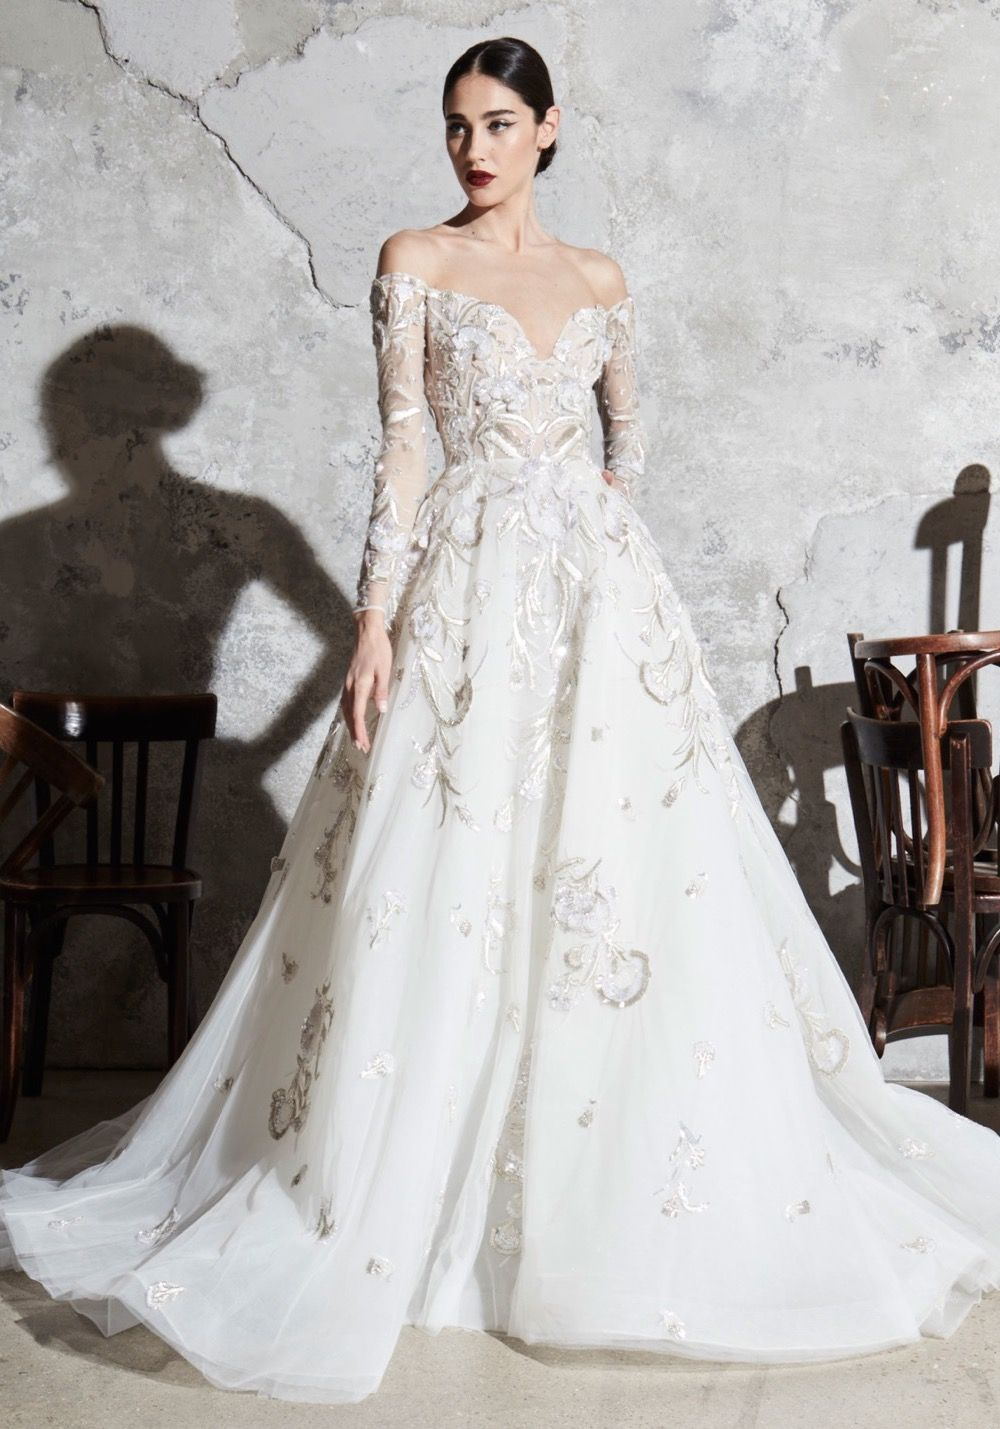 Zuhair Murad Spring 2020 Bridal Floriane Wedding Dress Wedding